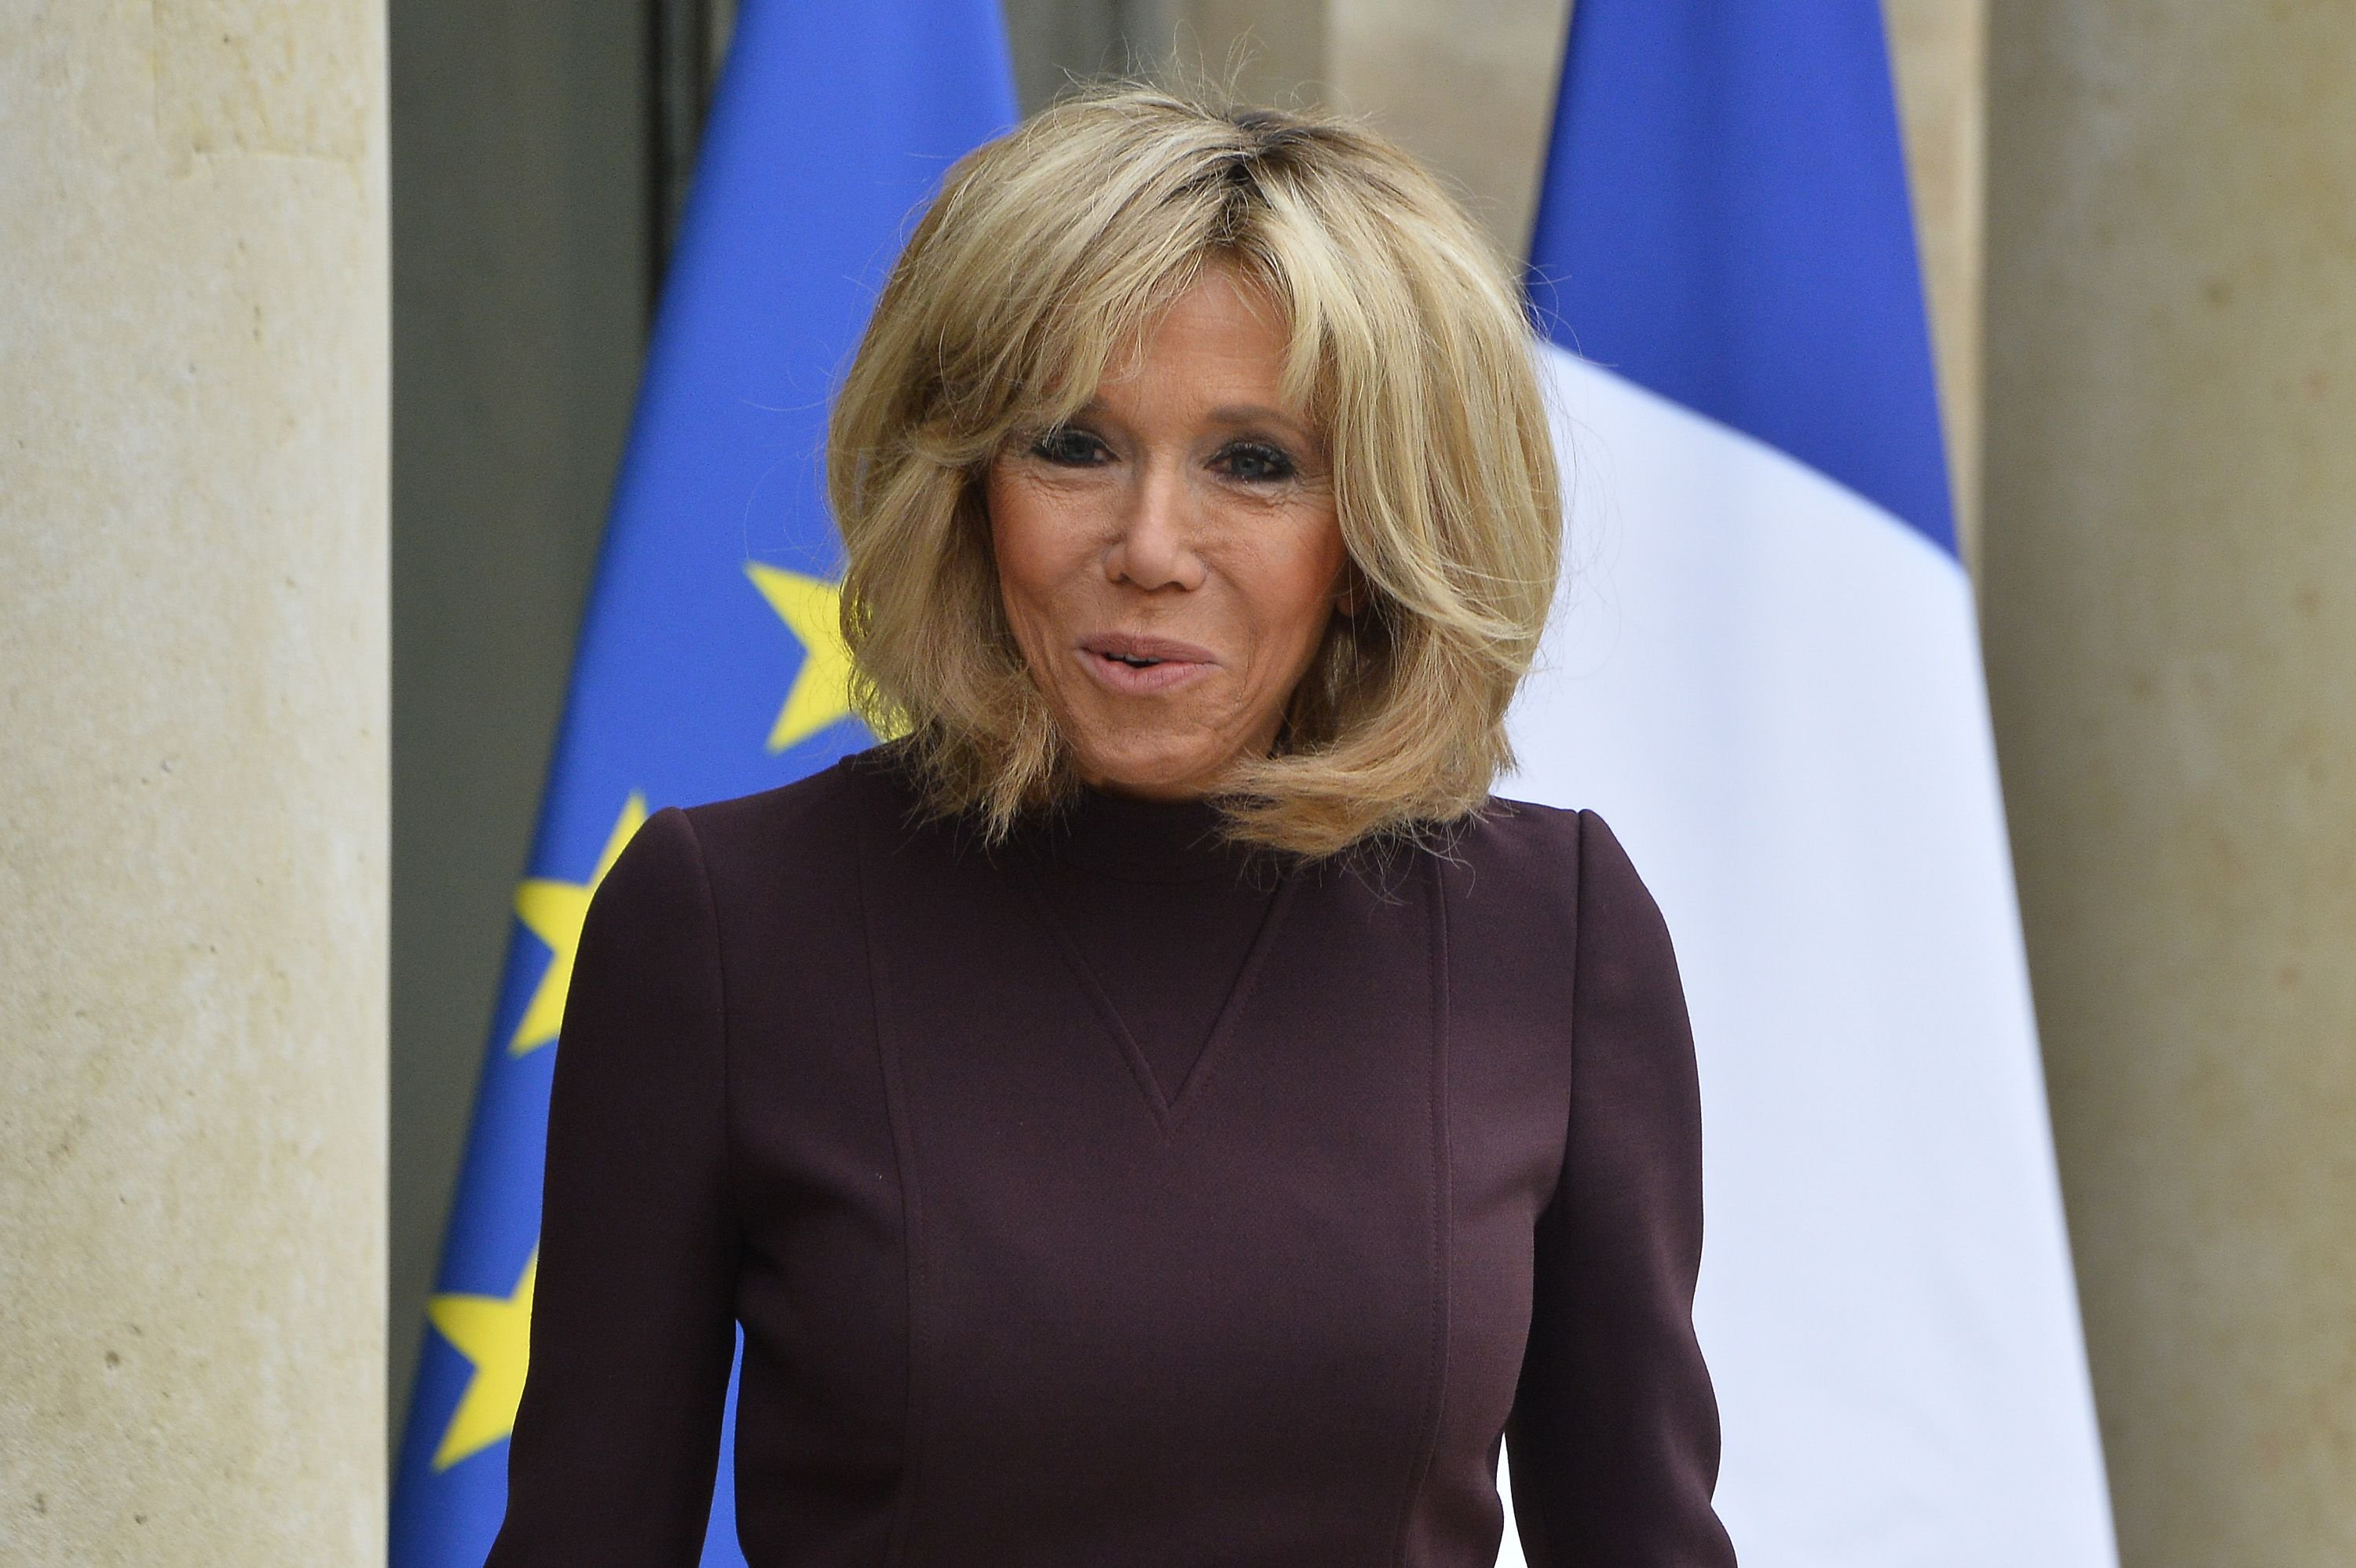 Brigitte Macron, le 18 novembre 2017 à Paris, en France. | Photo : Getty Images